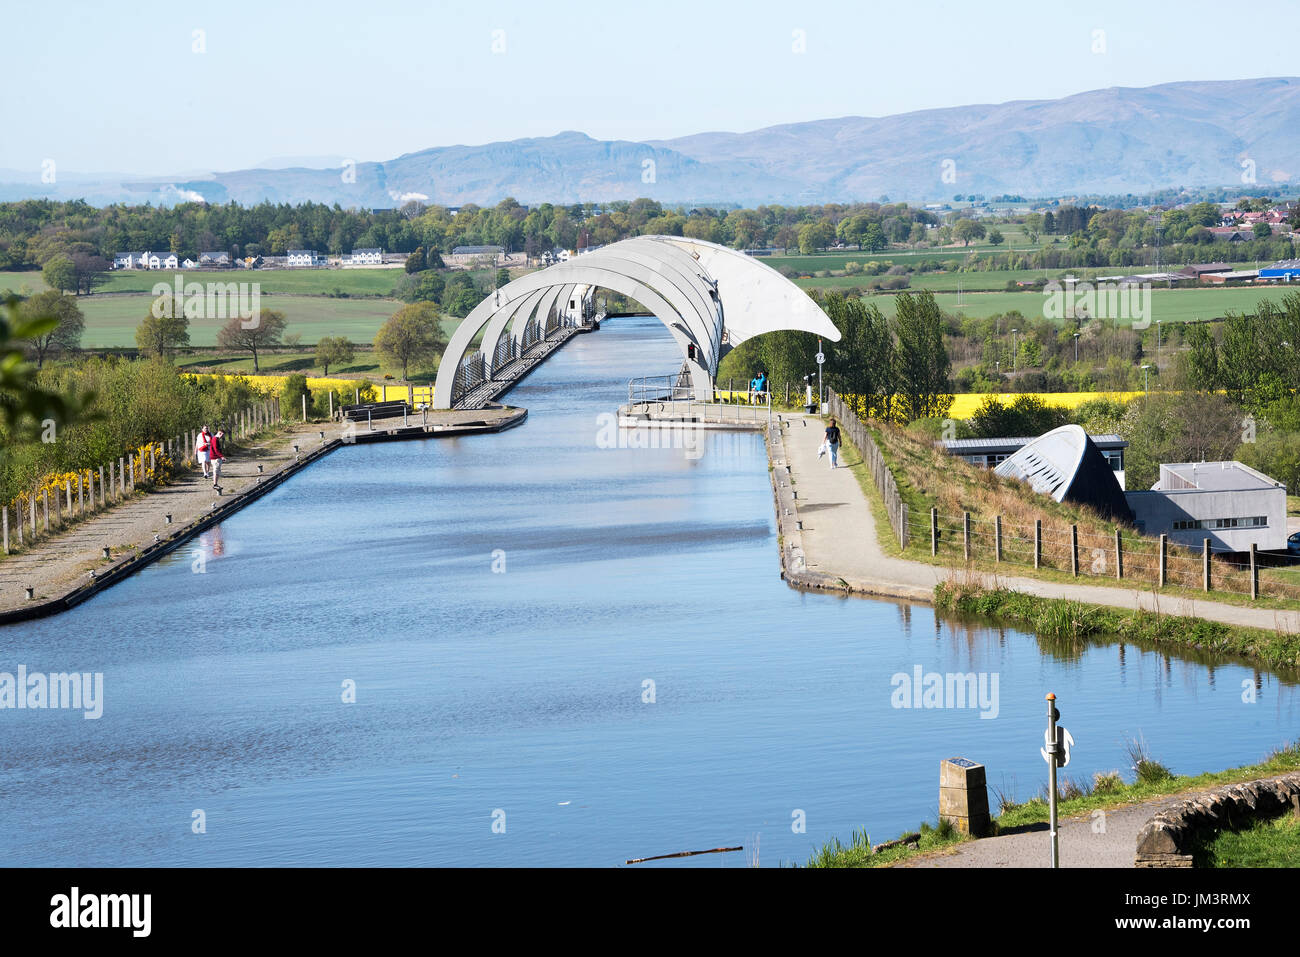 The Falkirk Wheel boat lift linking  the Union Canal and Forth & Clyde Canal, Falkirk, Scotland - Stock Image